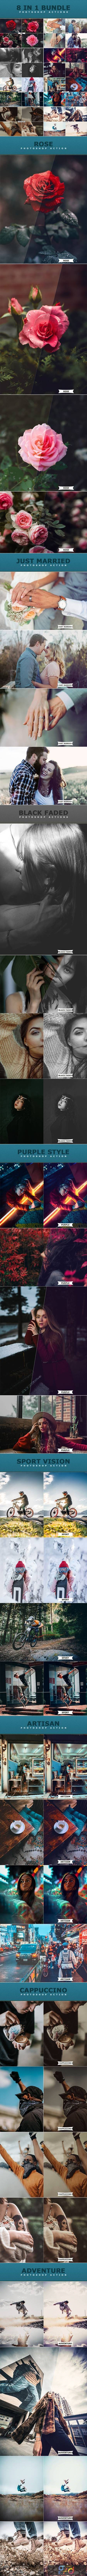 8 IN 1 Photoshop Actions Bundle 27450364 1